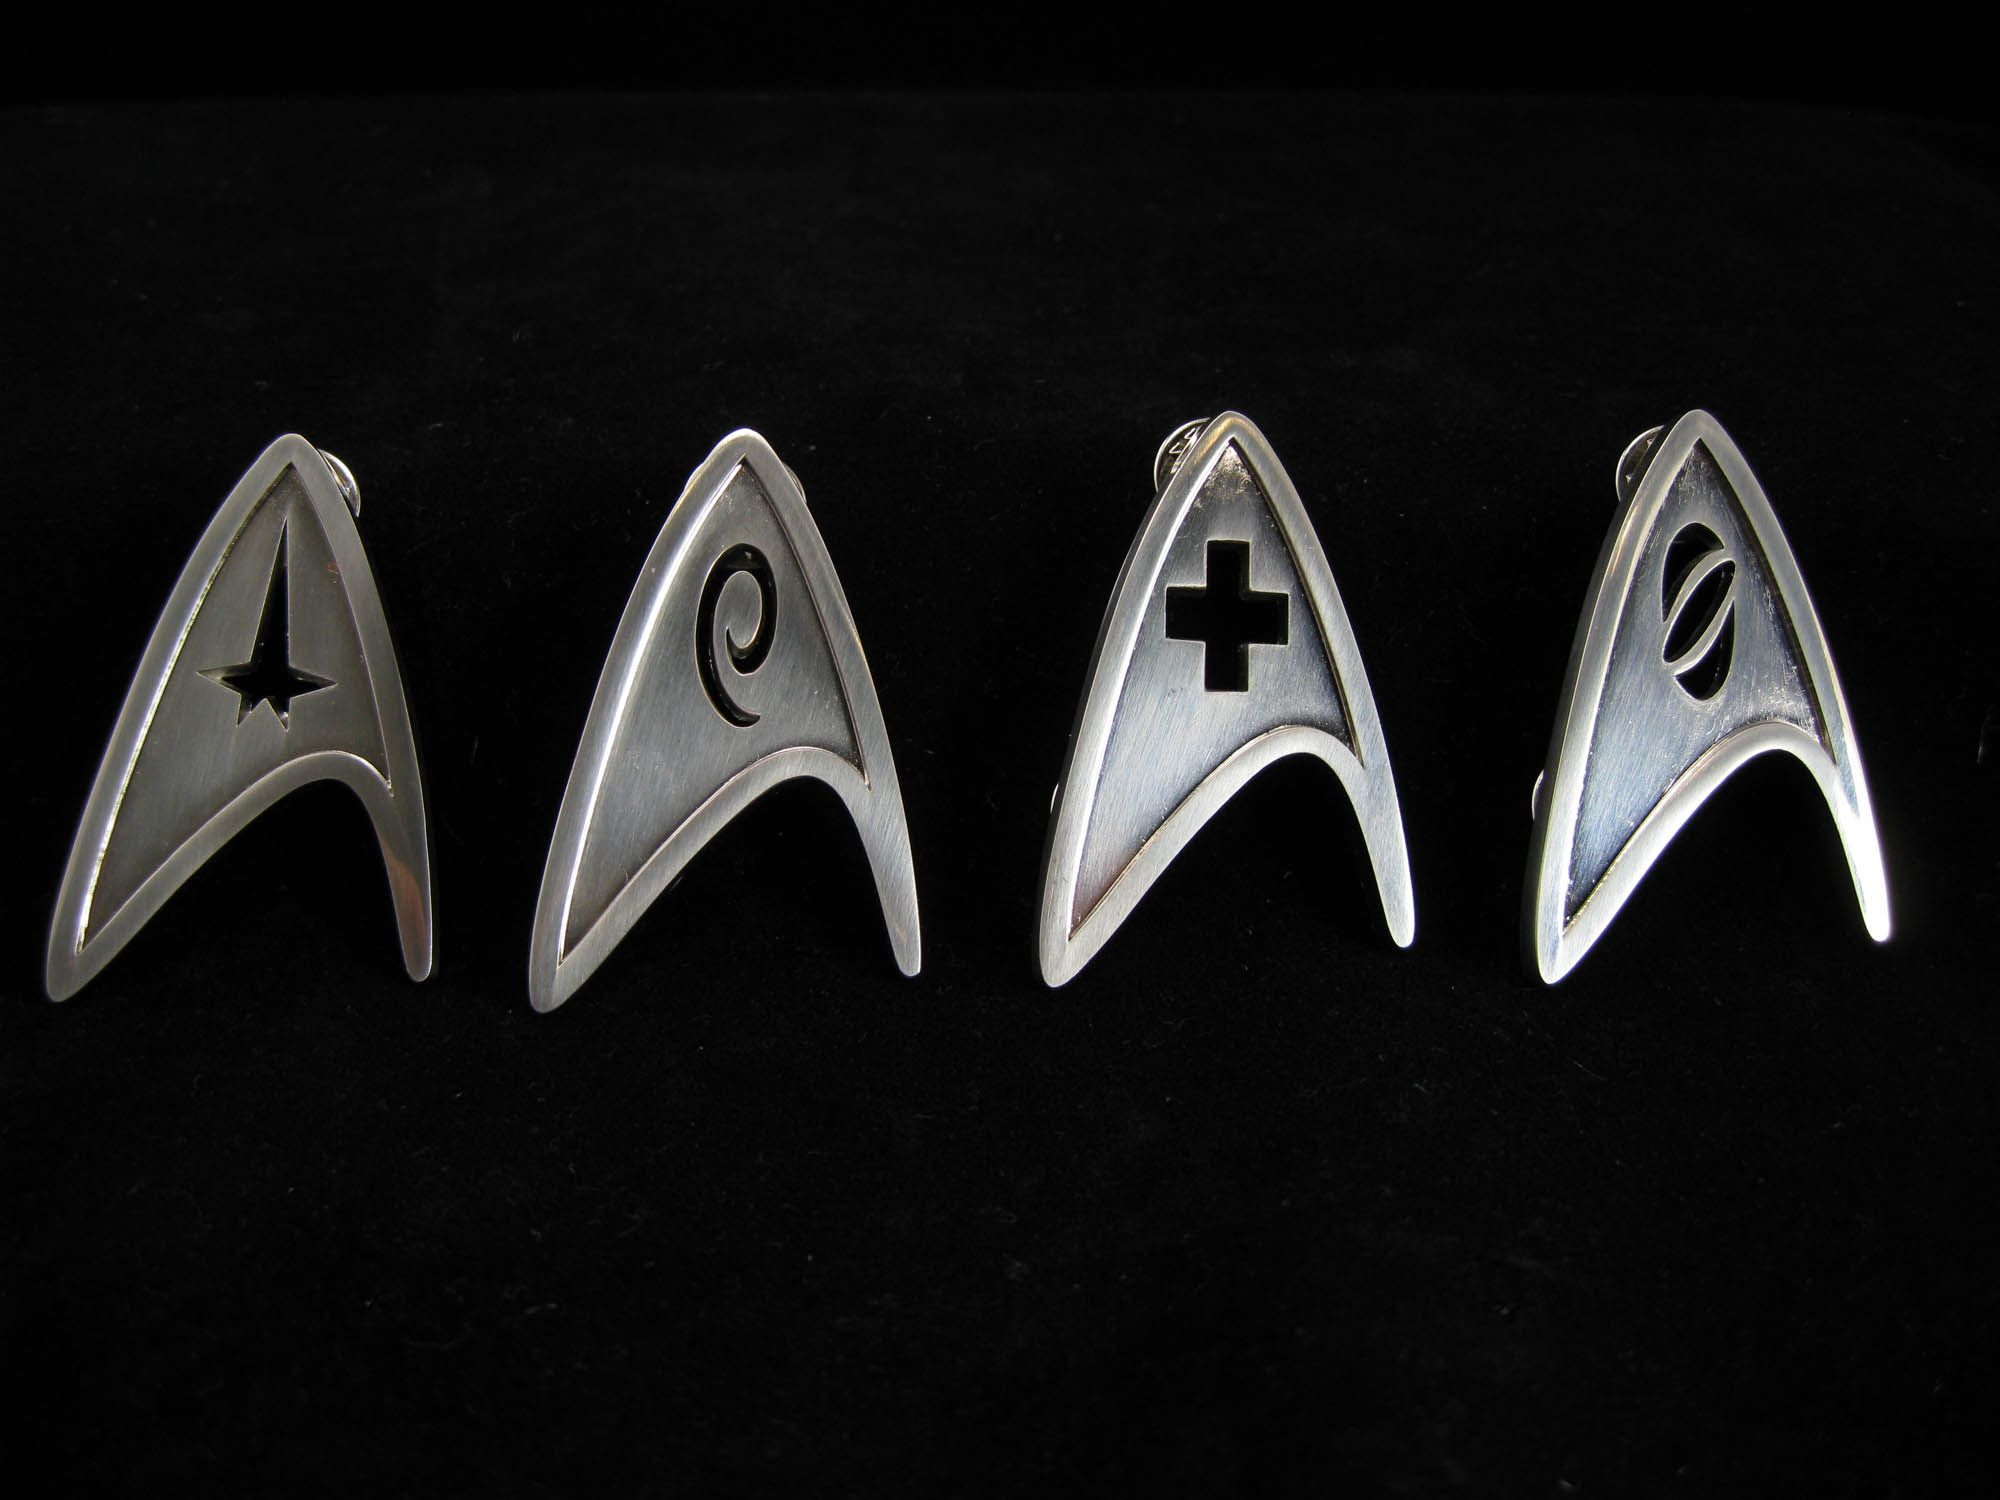 star_trek_best_buy_blu-ray_starfleet_gift_set_pins_01.jpg